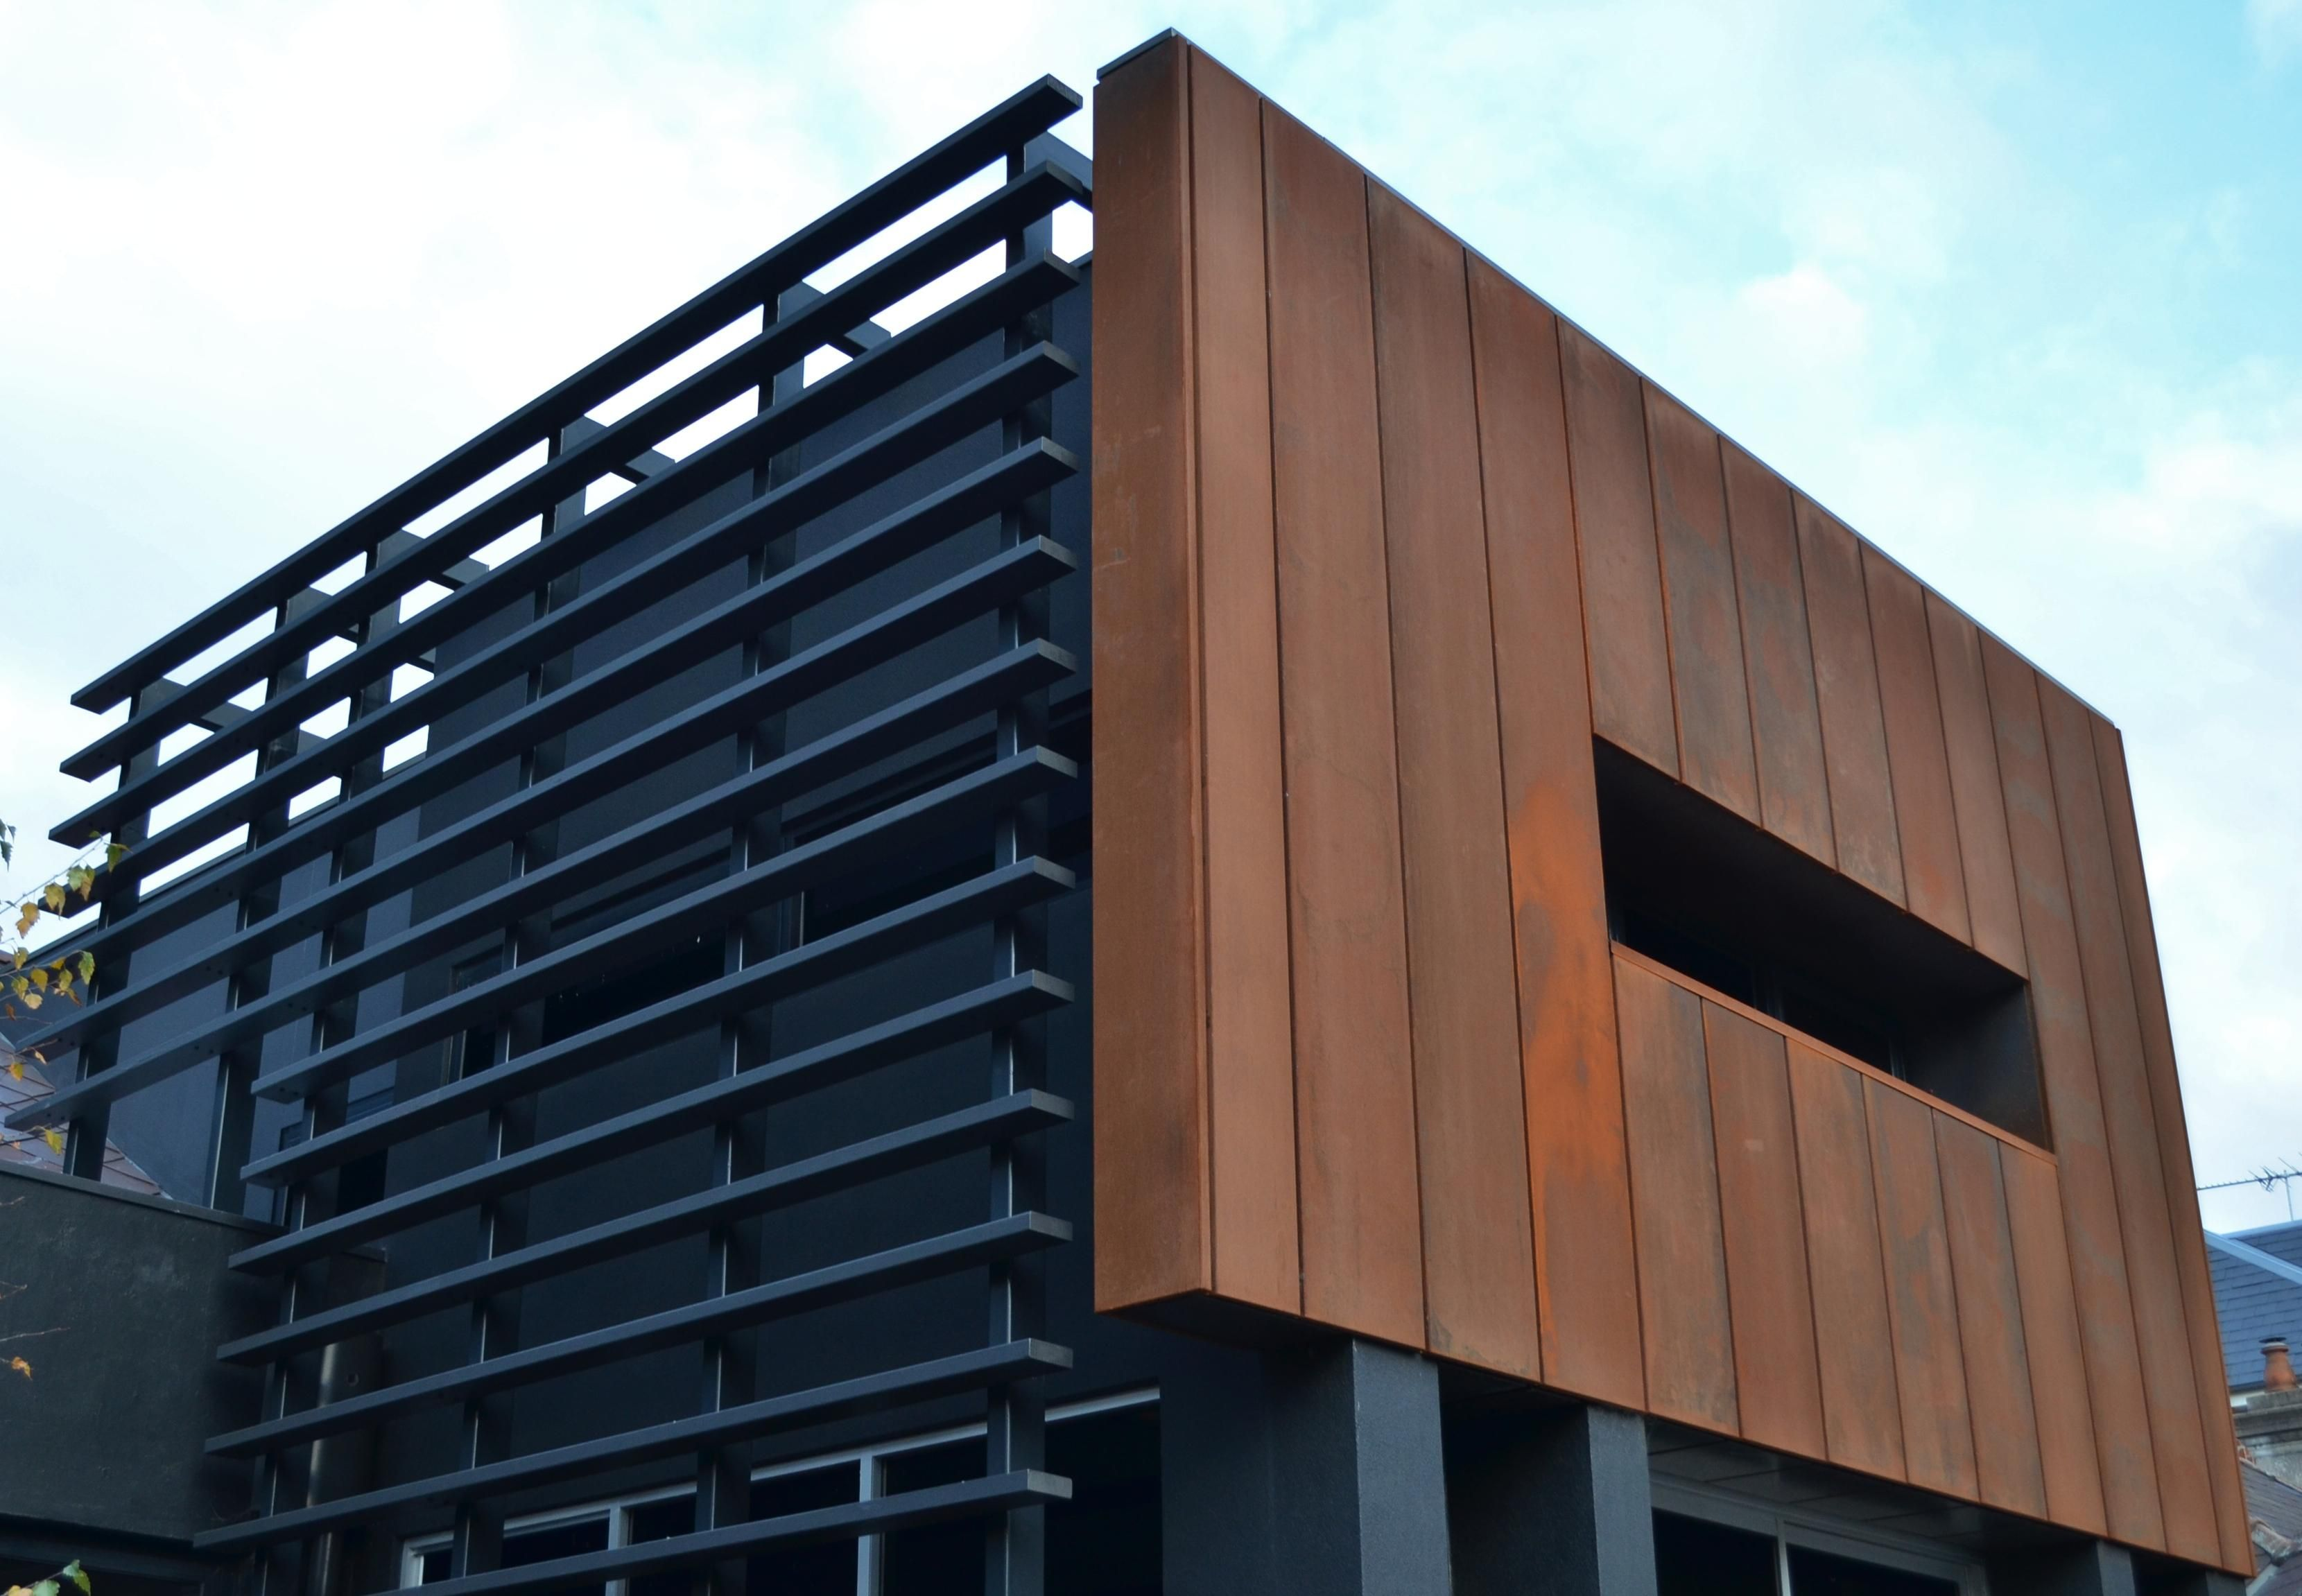 Cassette panel copper design cladding architecture for Exterior framing